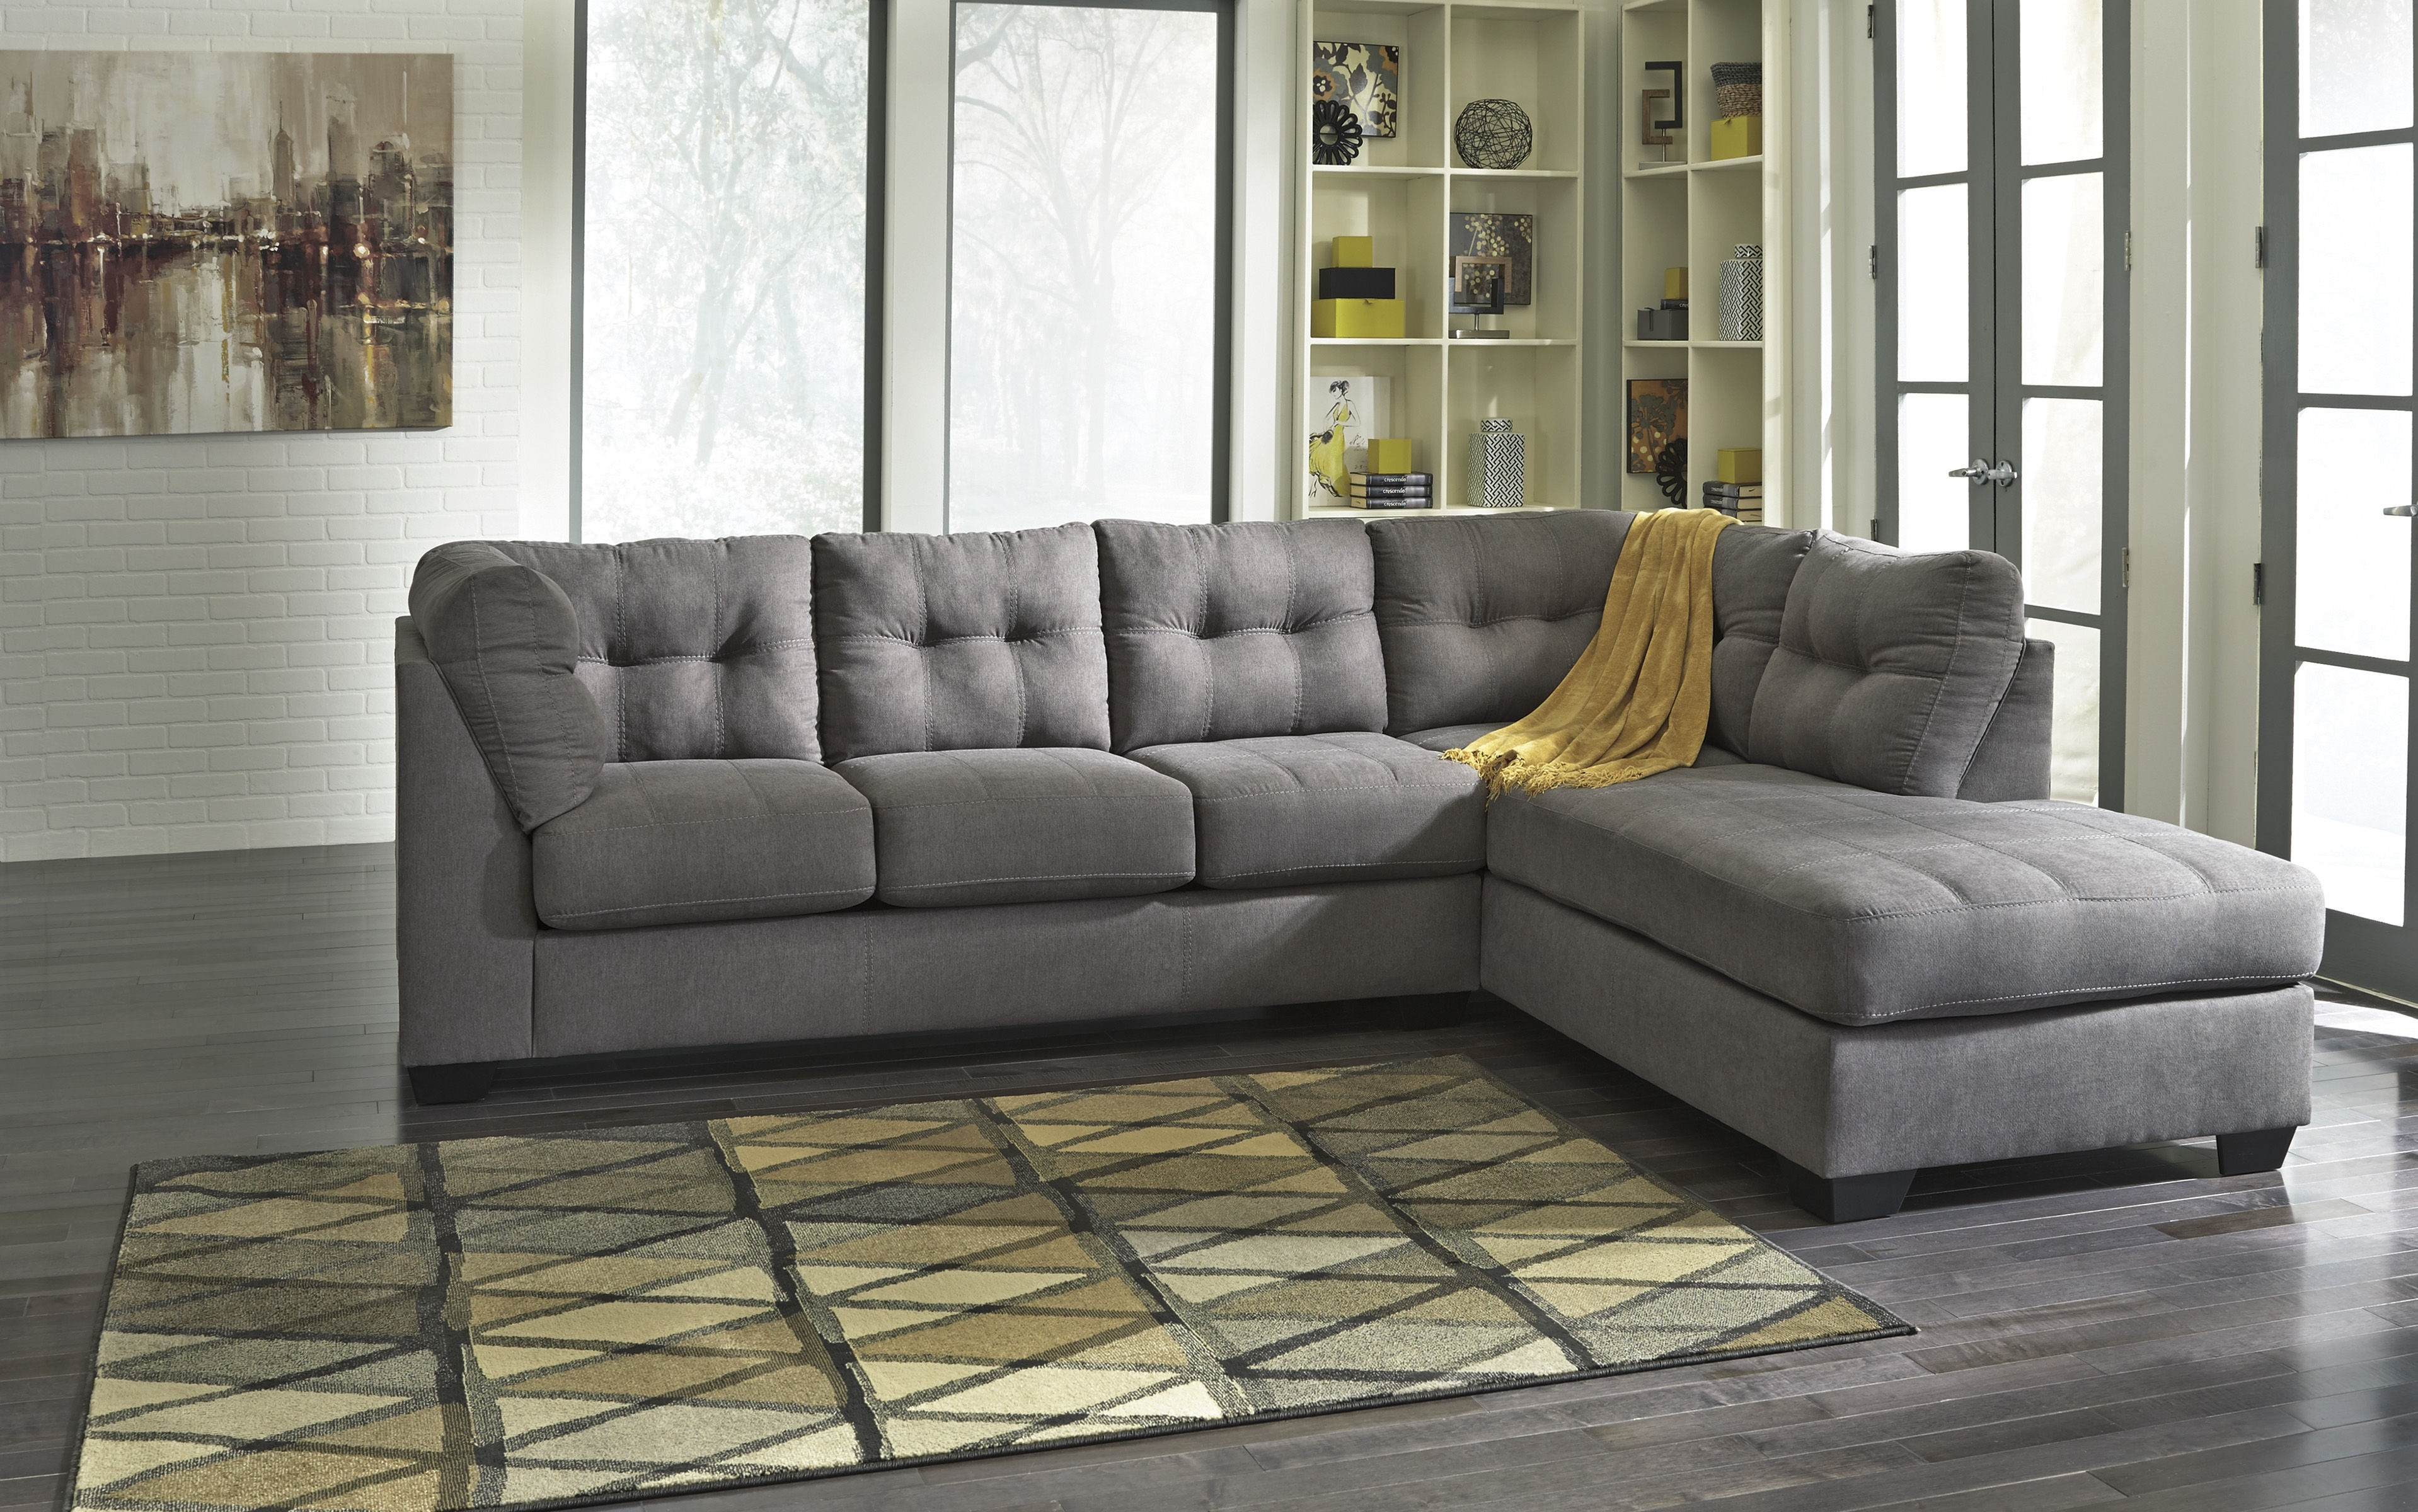 Ashley Furniture Maier Charcoal Raf Chaise Sectional | The Classy Home Throughout Lucy Grey 2 Piece Sleeper Sectionals With Laf Chaise (View 7 of 25)